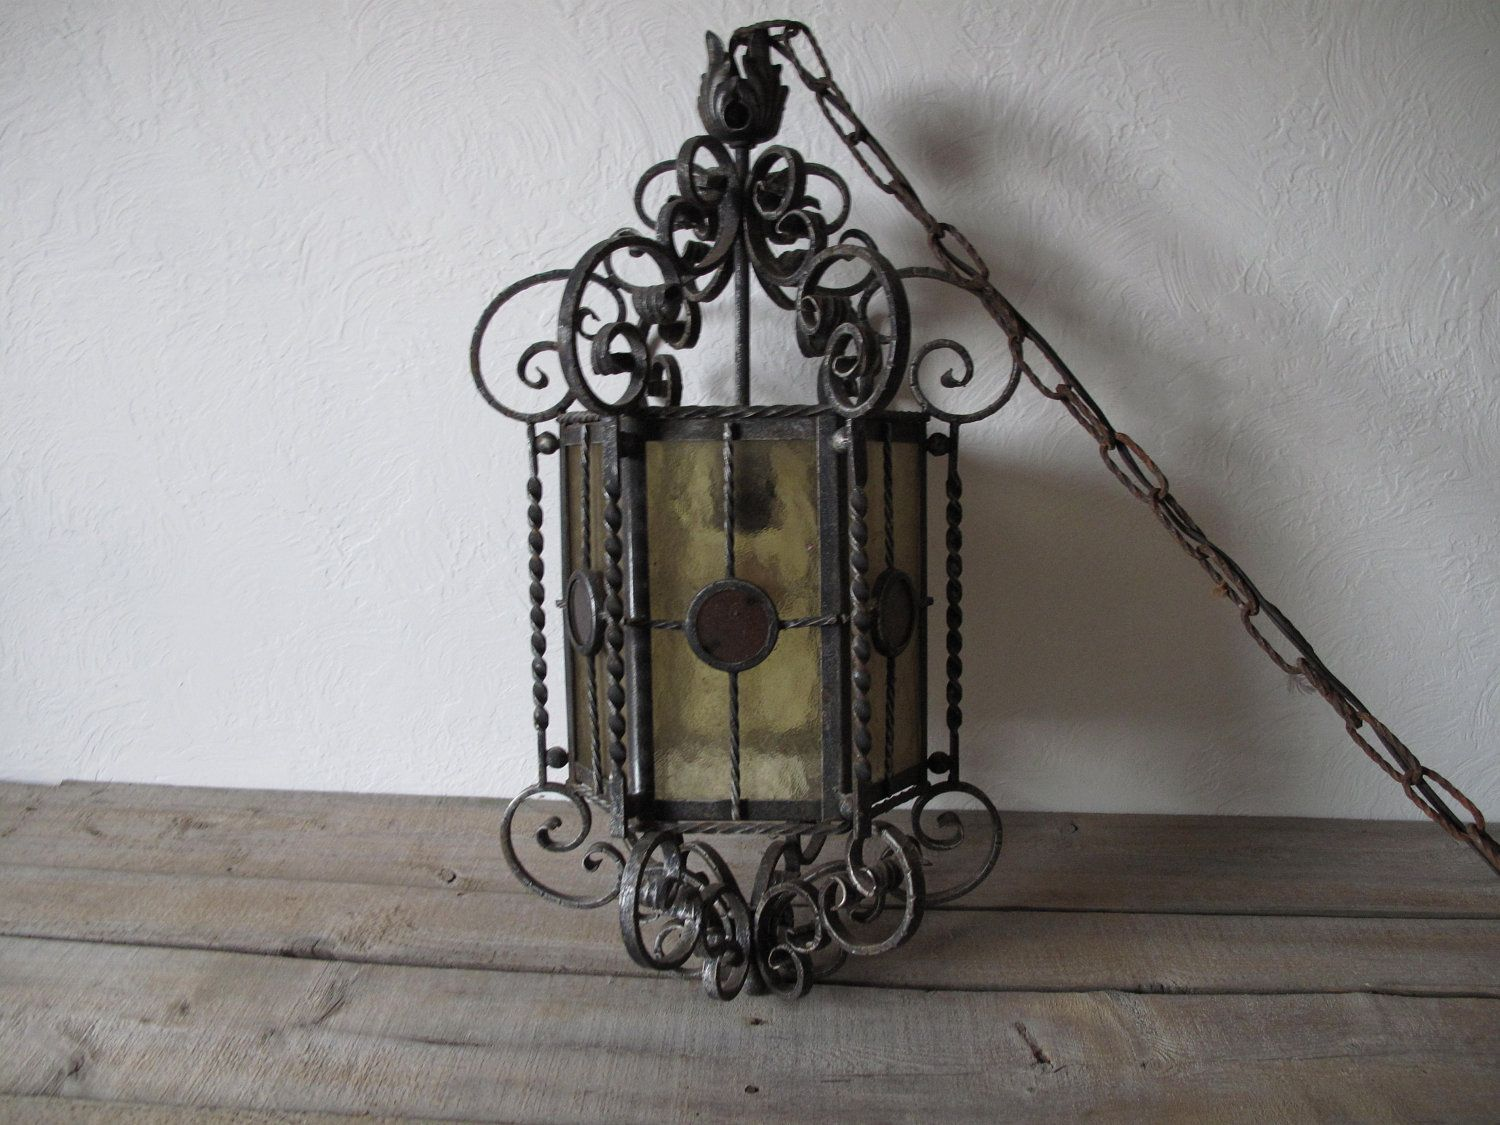 Vintage Wrought Iron Light Vintage Hanging Light Stained Glass Light Pendent Light Amber Red Scrow Wrought Iron Lights Stained Glass Light Hanging Lights